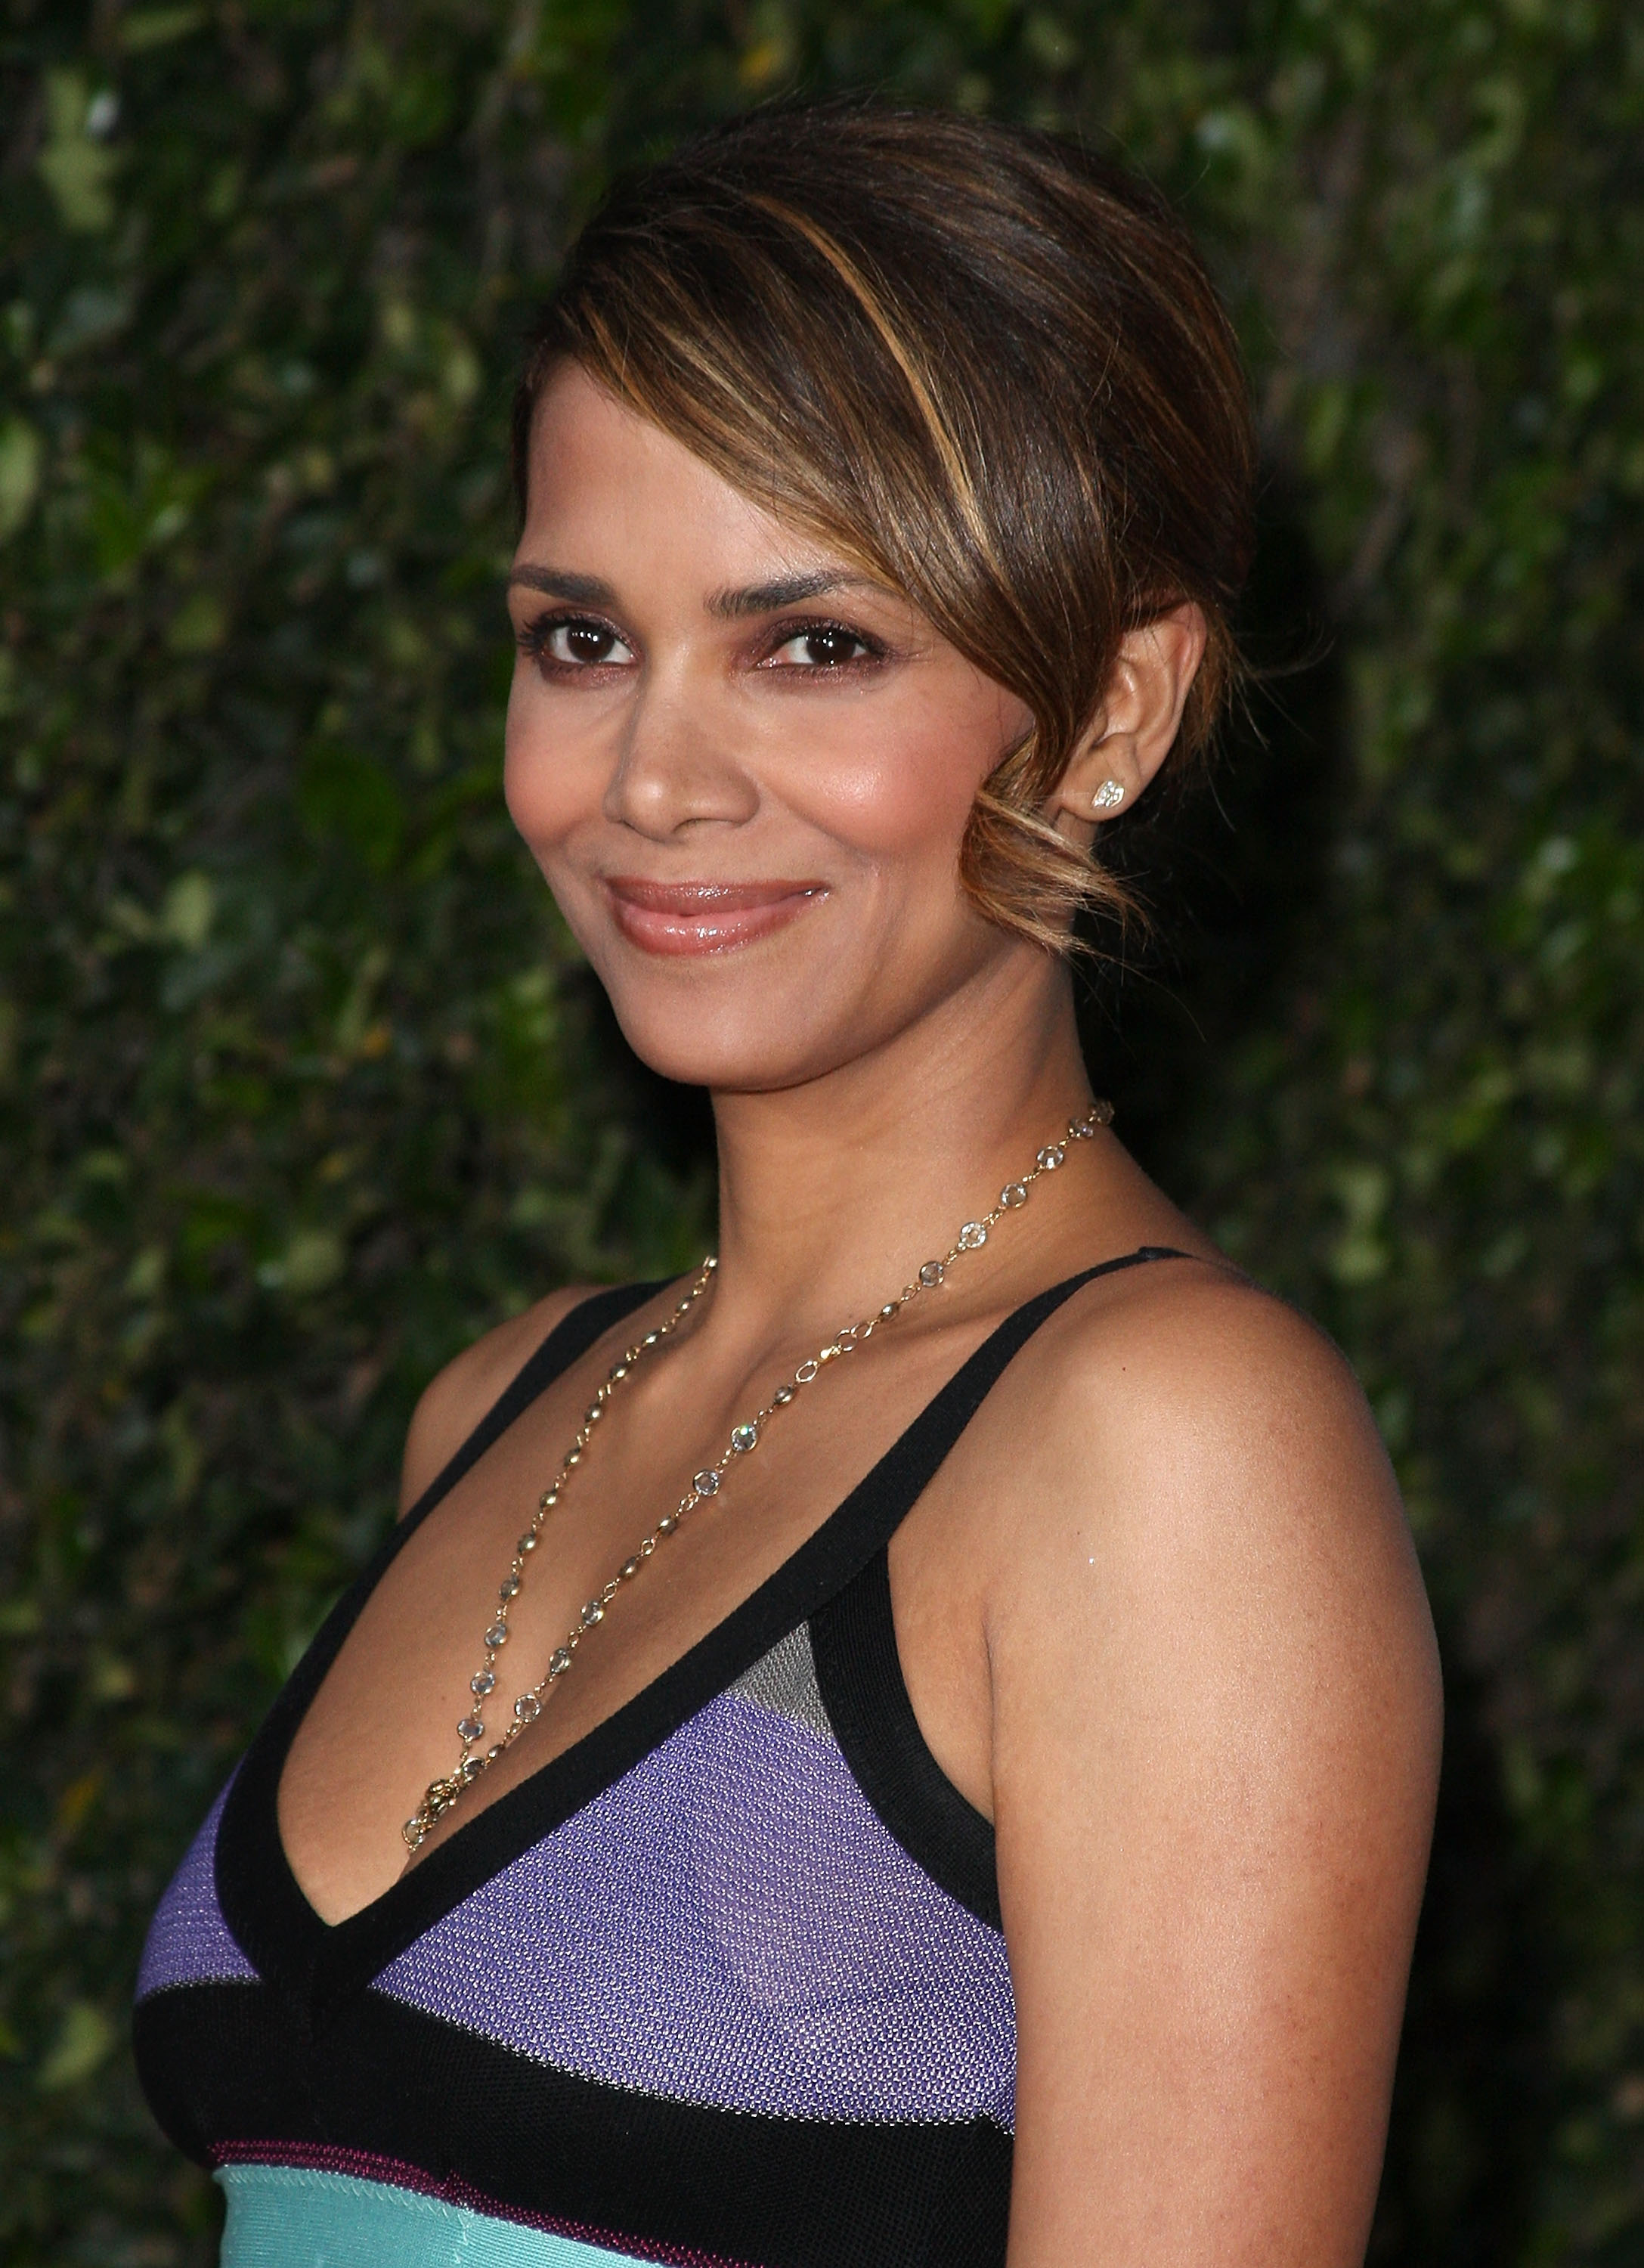 65646_Halle_Berry_The_Soloist_premiere_in_Los_Angeles_74_122_67lo.jpg